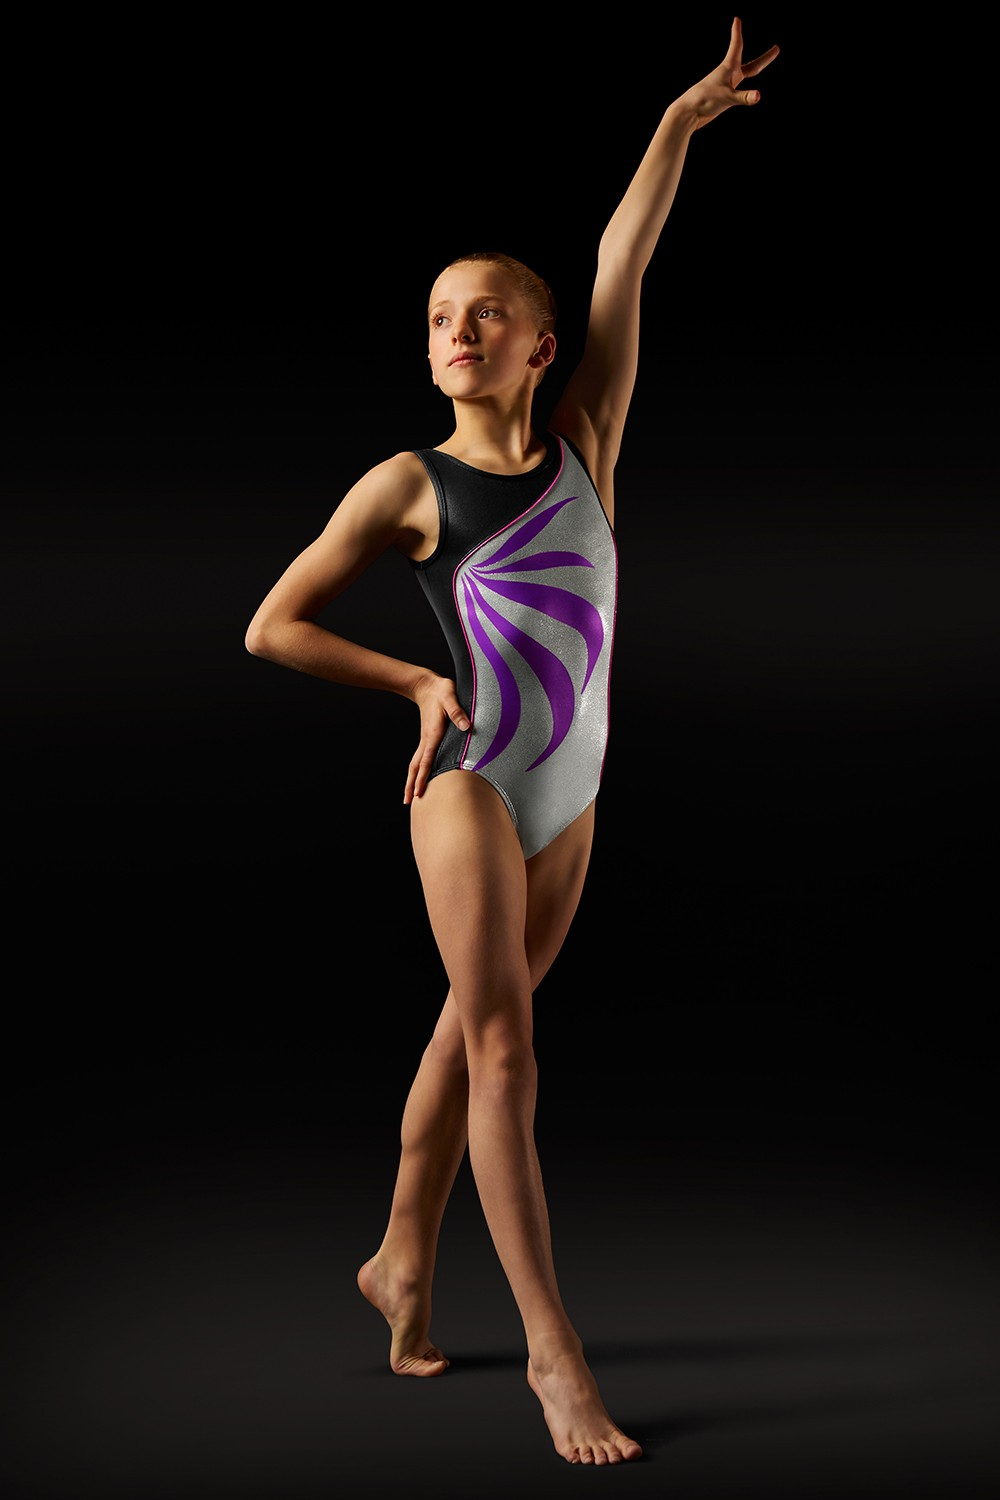 Flare Tank Leotard - Girls Girl's Gymnastics Leotards